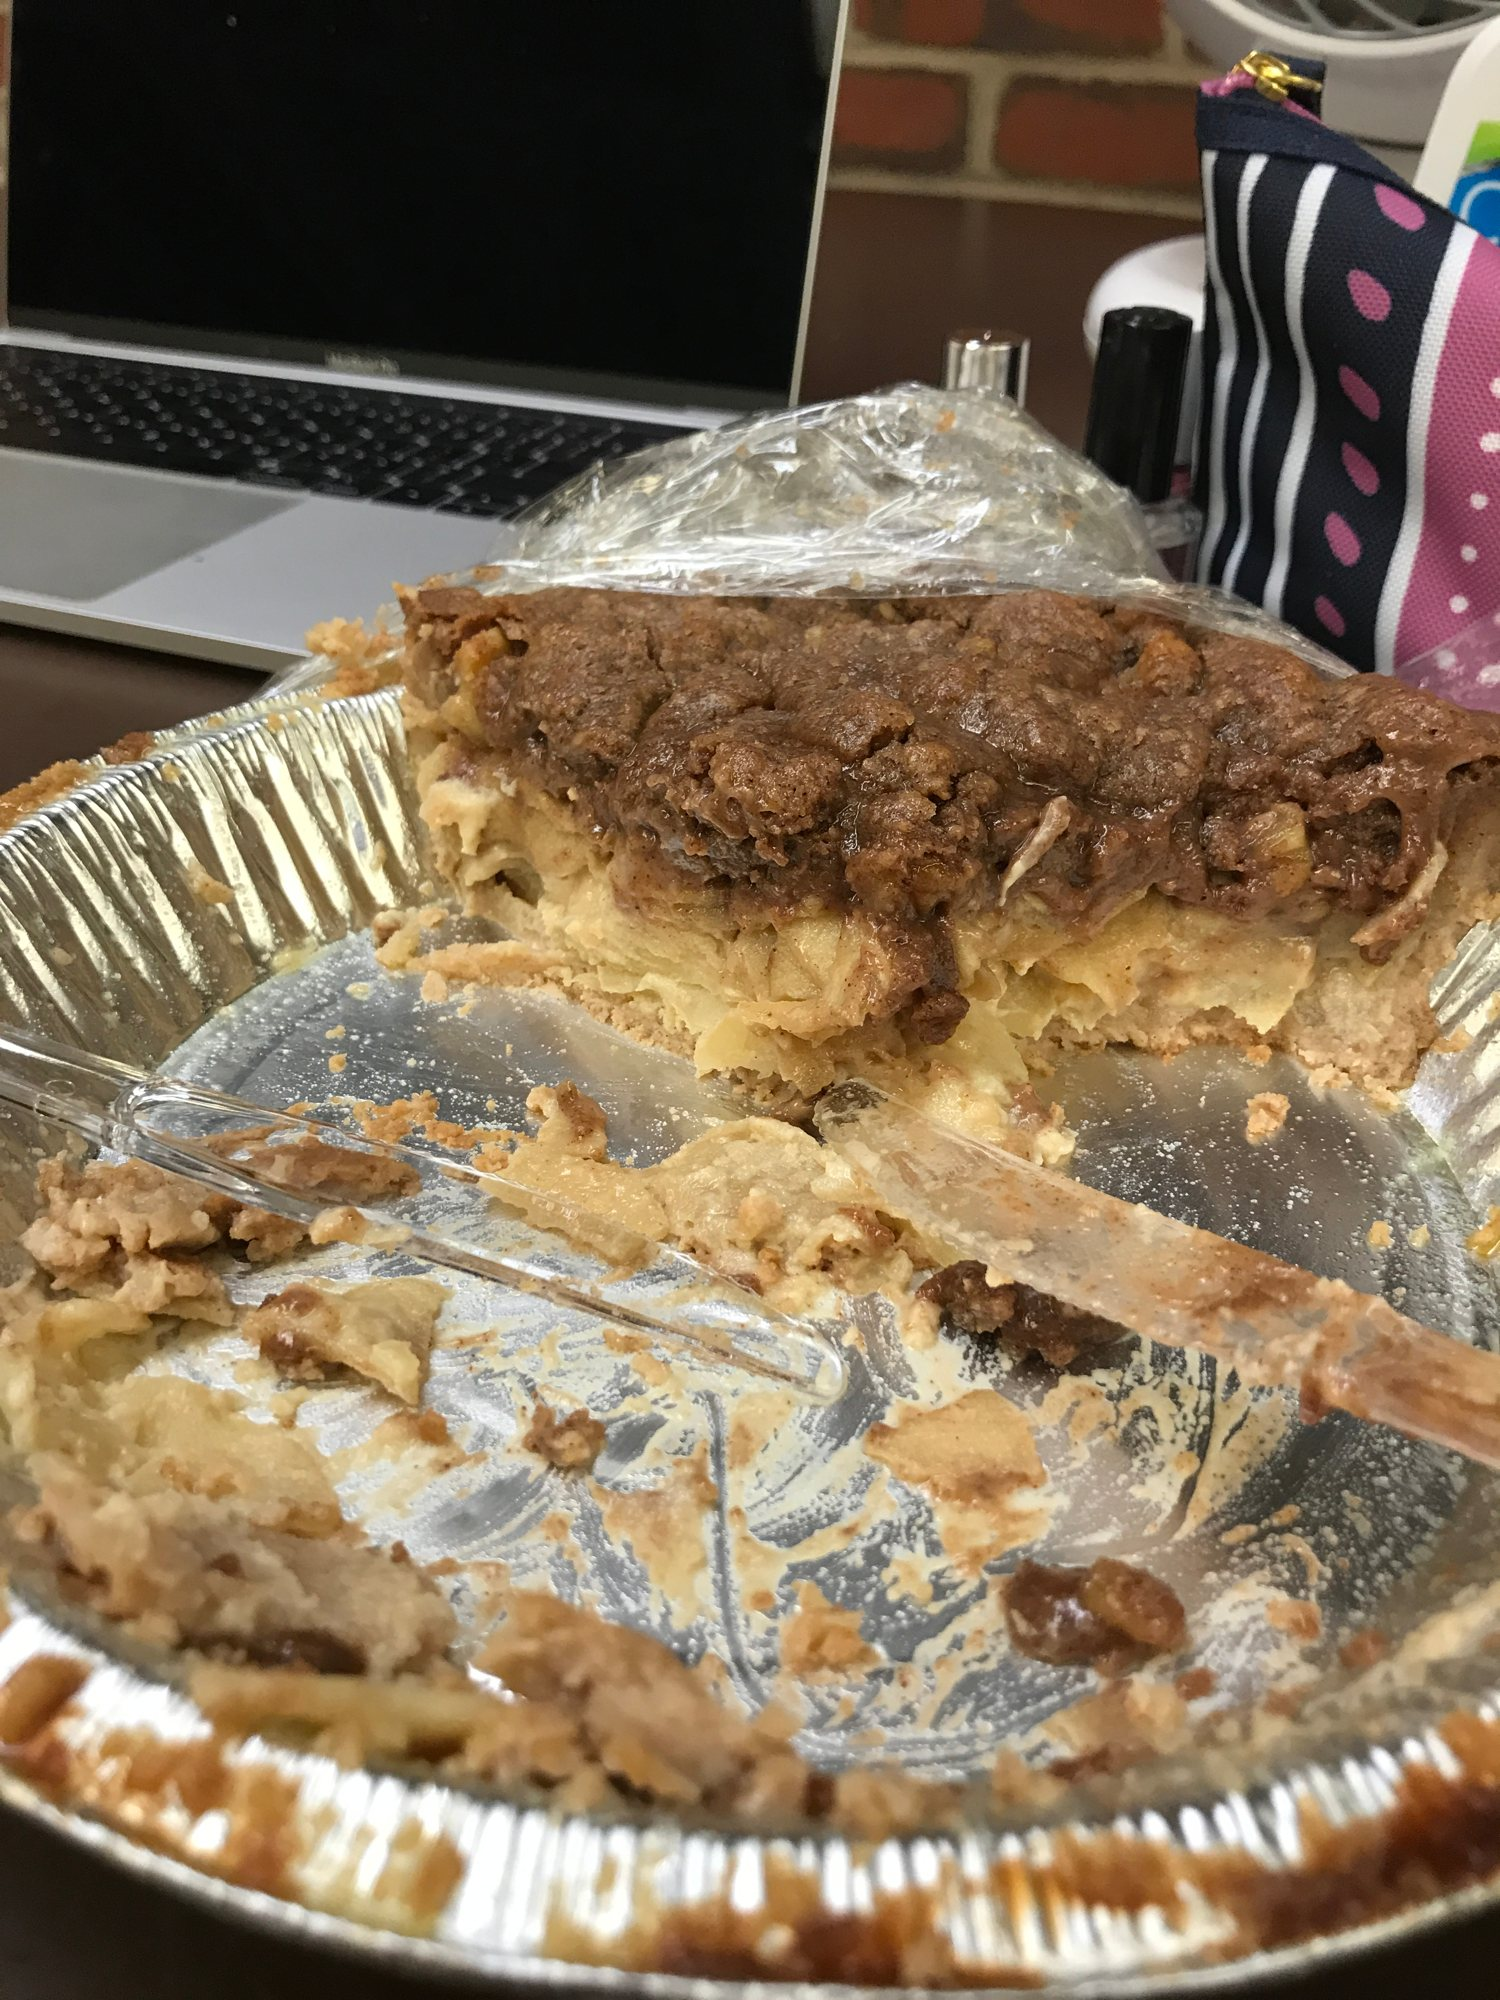 Photo of pie plate with only one slice remaining